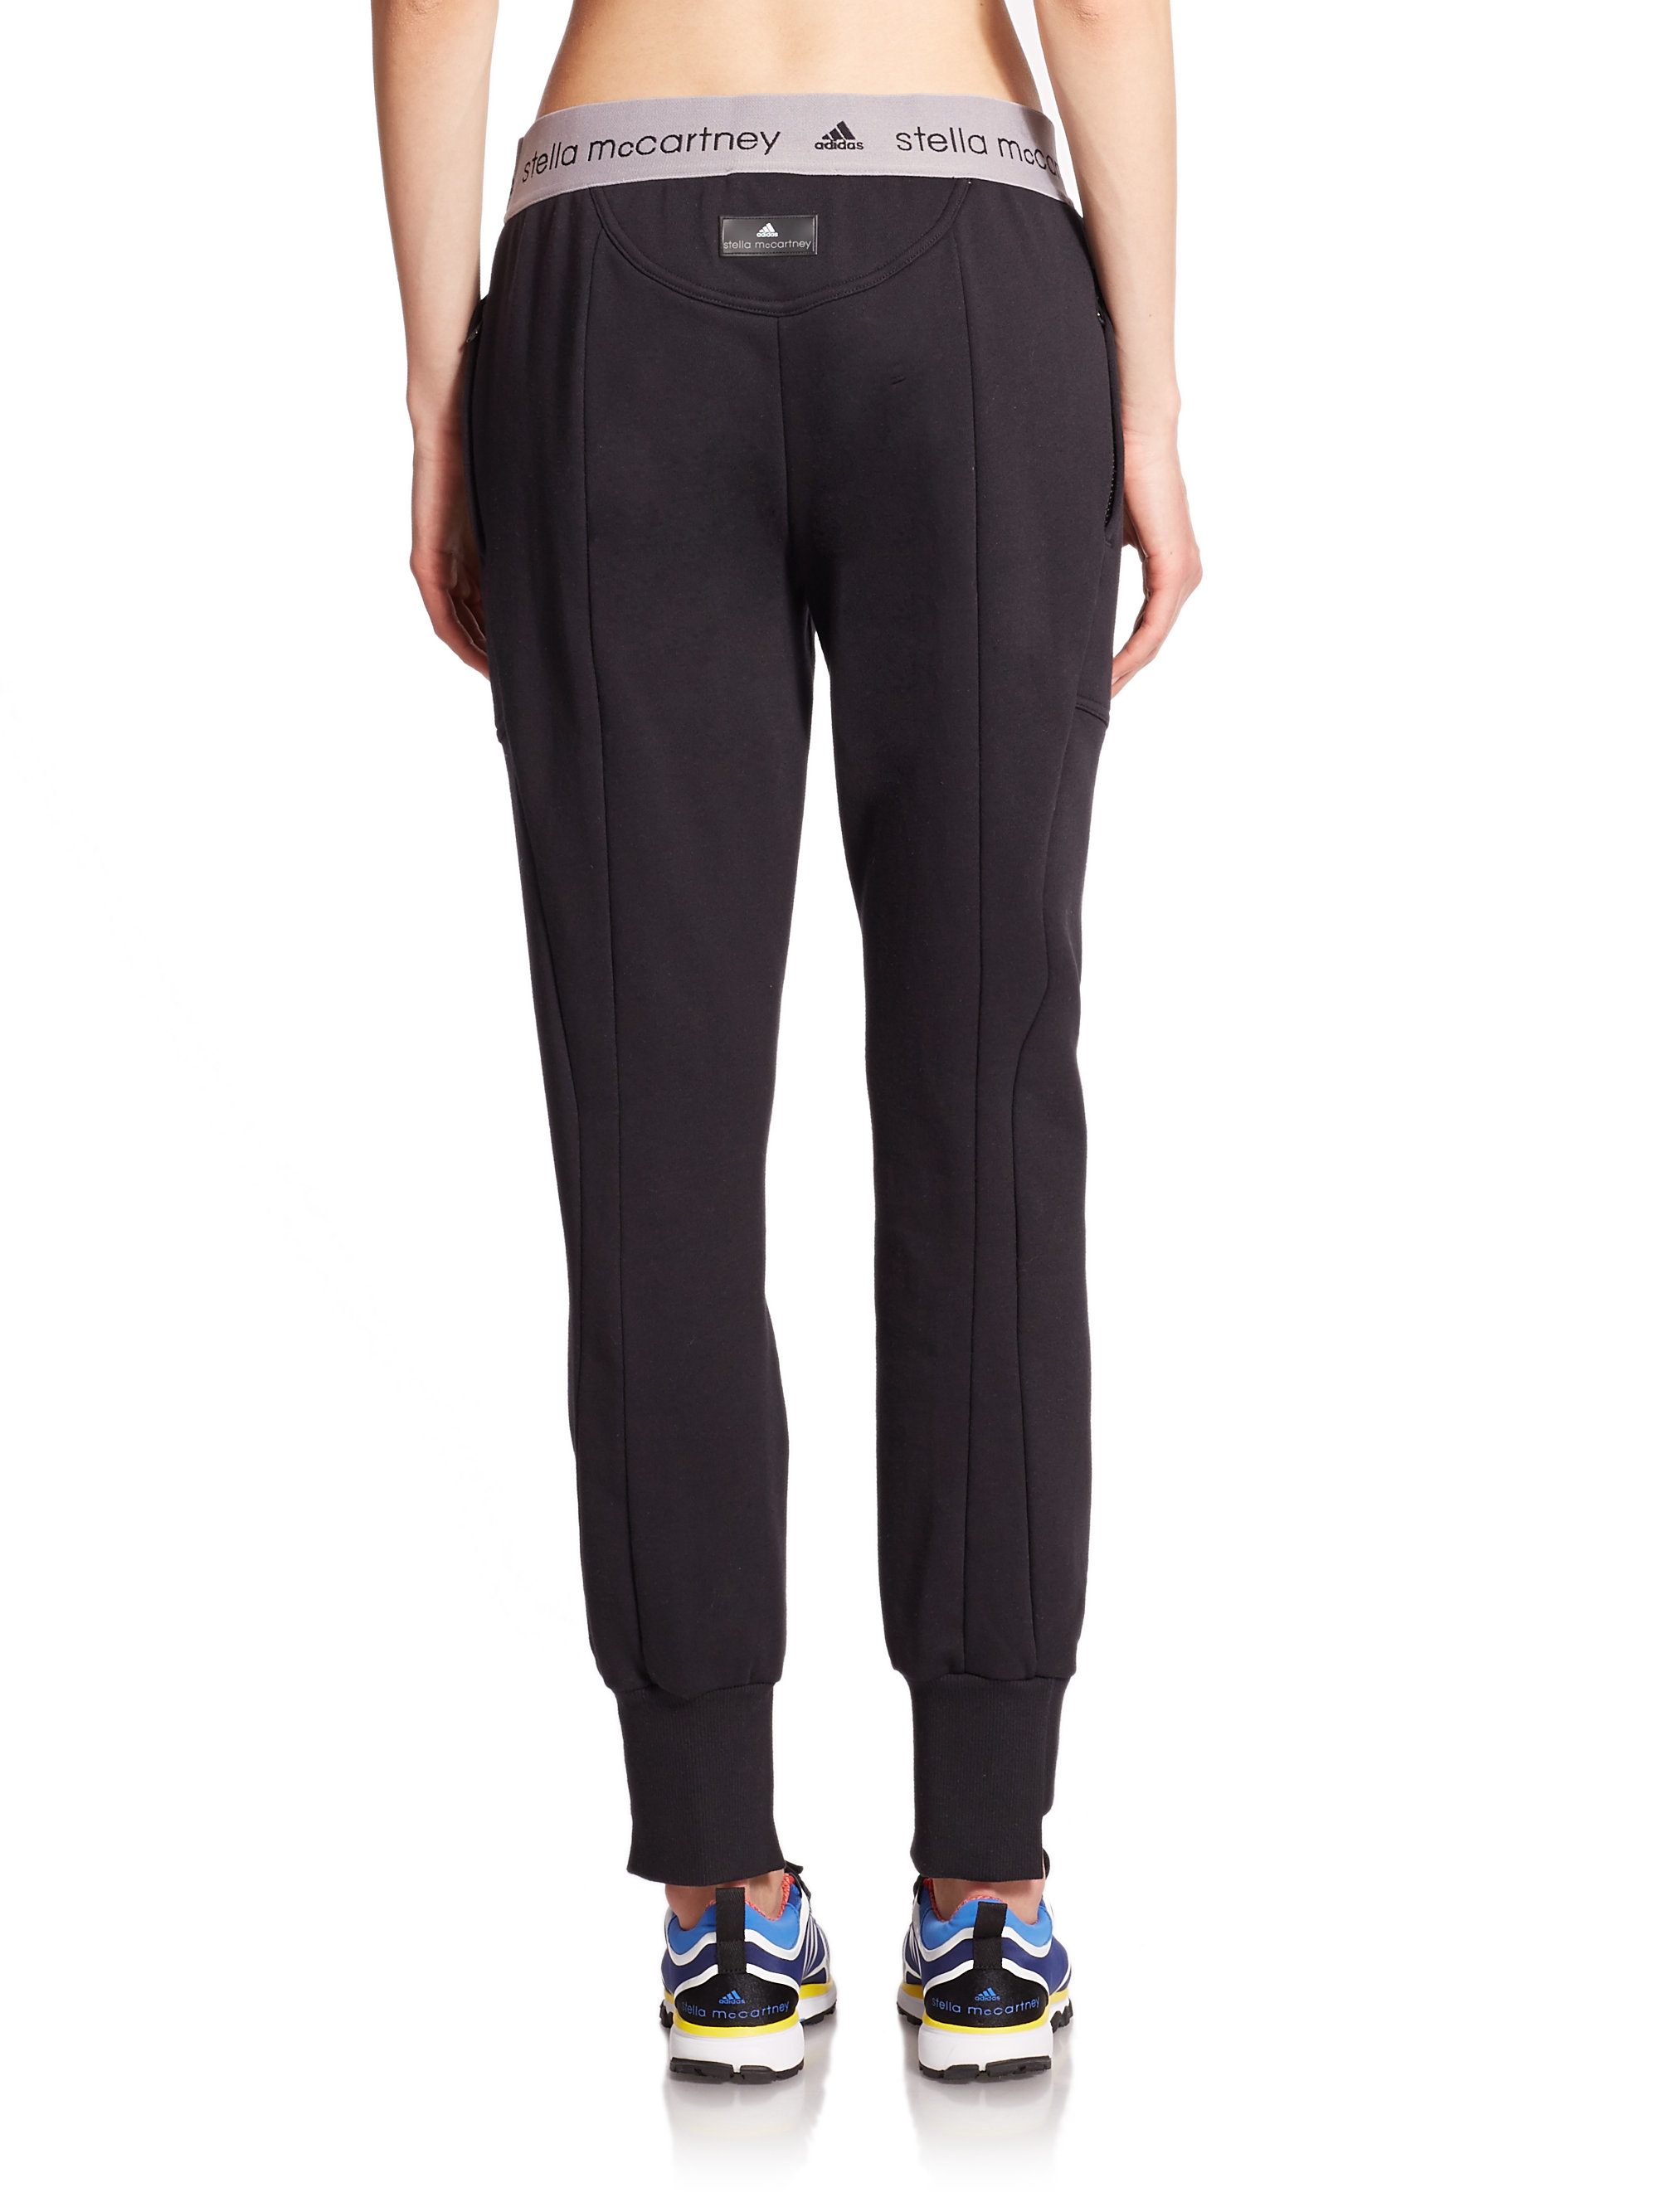 Find Men's Cotton Sweatpants, Women's Cotton Sweatpants and more at Macy's. Enjoy a snug or loose feel with the versatility of drawstring sweatpants. The lightweight feel of cotton adds to an amazing casual go-to. Features like an elastic waist and convenient hand pockets enhance a great workout routine.